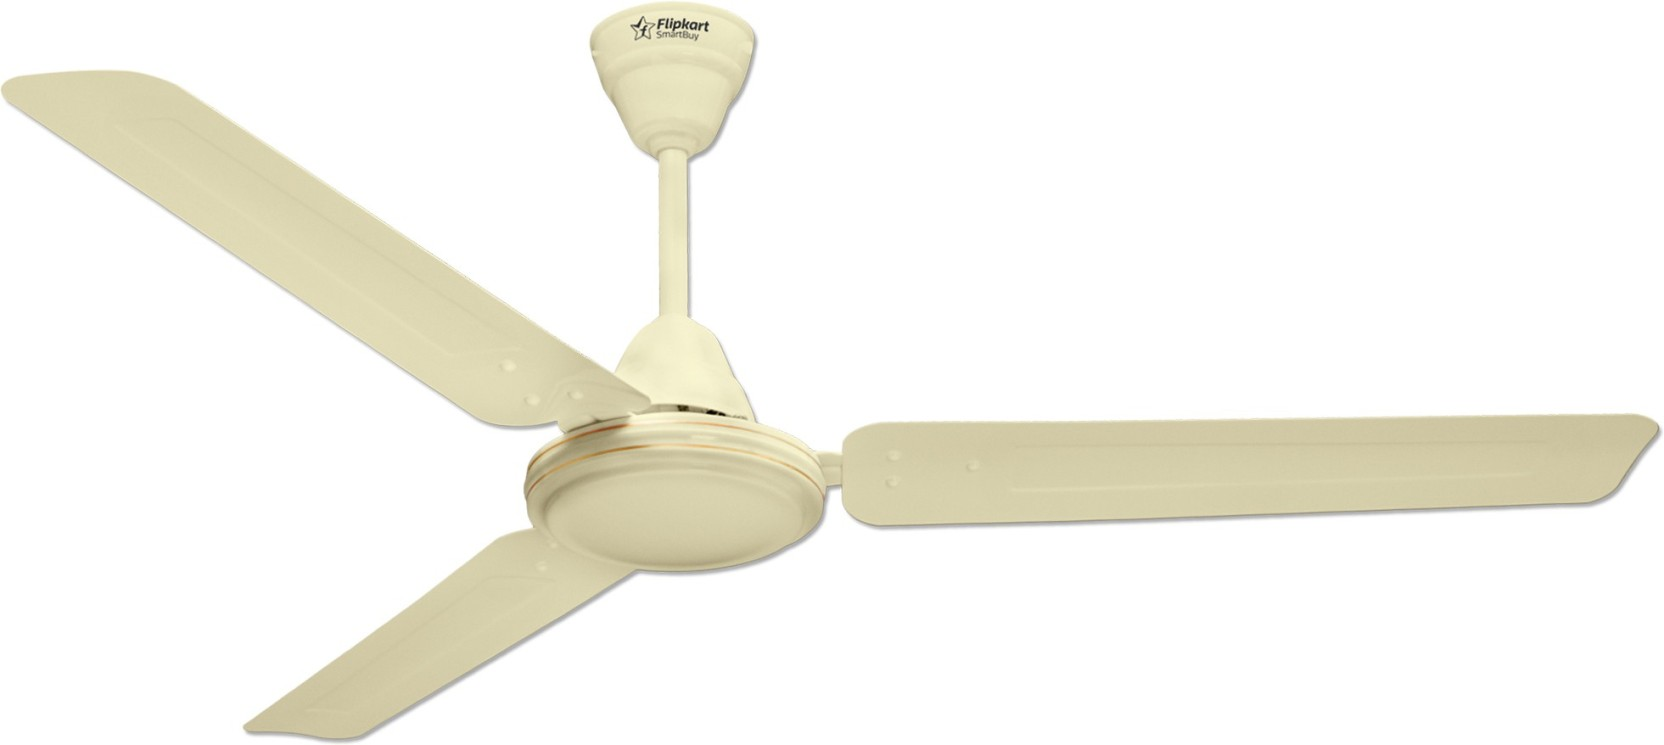 Flipkart Smartbuy Classic Ceiling Fan Price In India Buy Google On 3 Wires And Wiring A Without Light Add To Cart